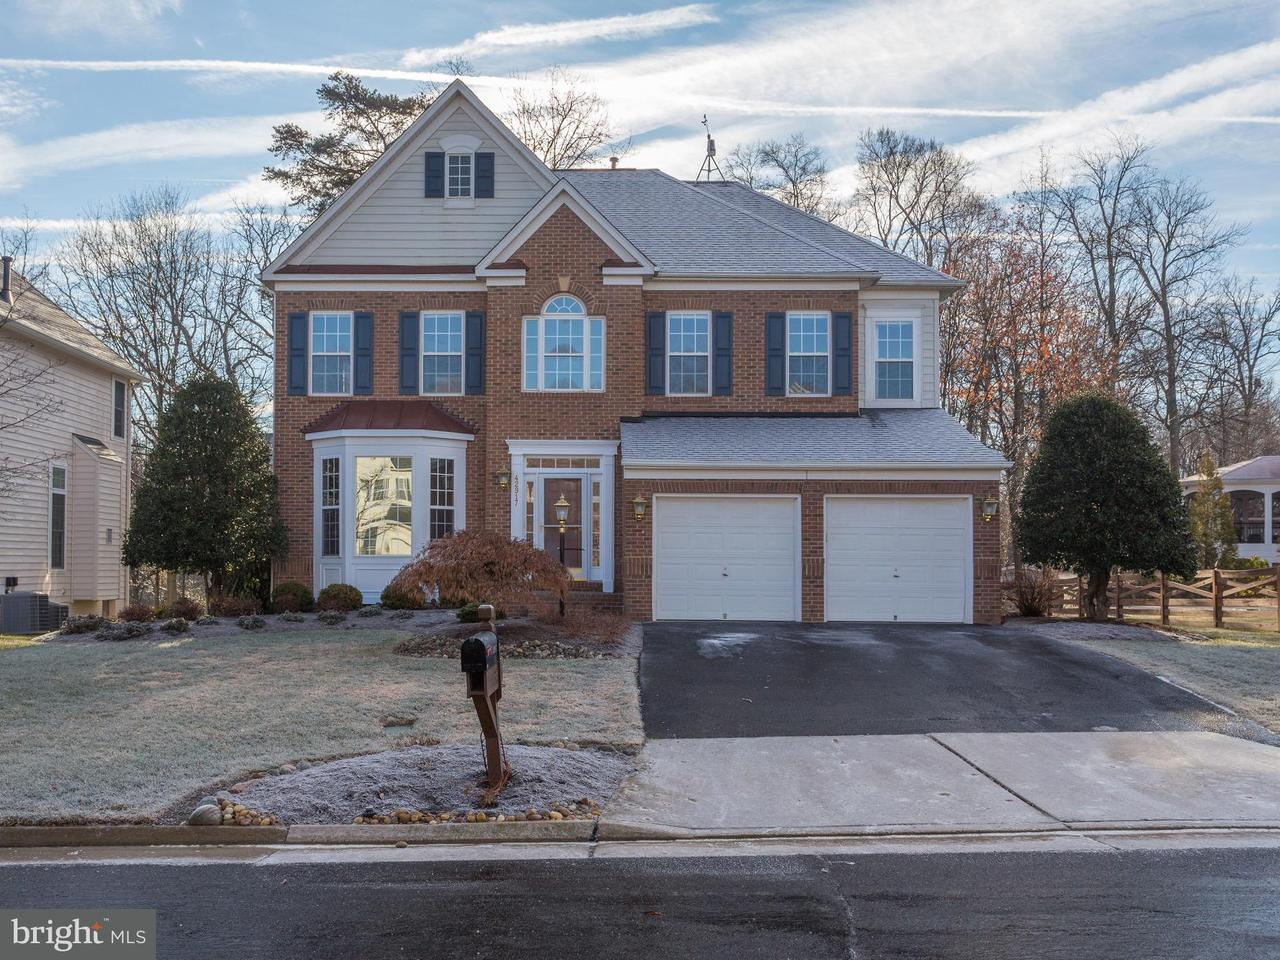 Single Family Home for Sale at 42917 CATTAIL MEADOWS Place 42917 CATTAIL MEADOWS Place Broadlands, Virginia 20148 United States